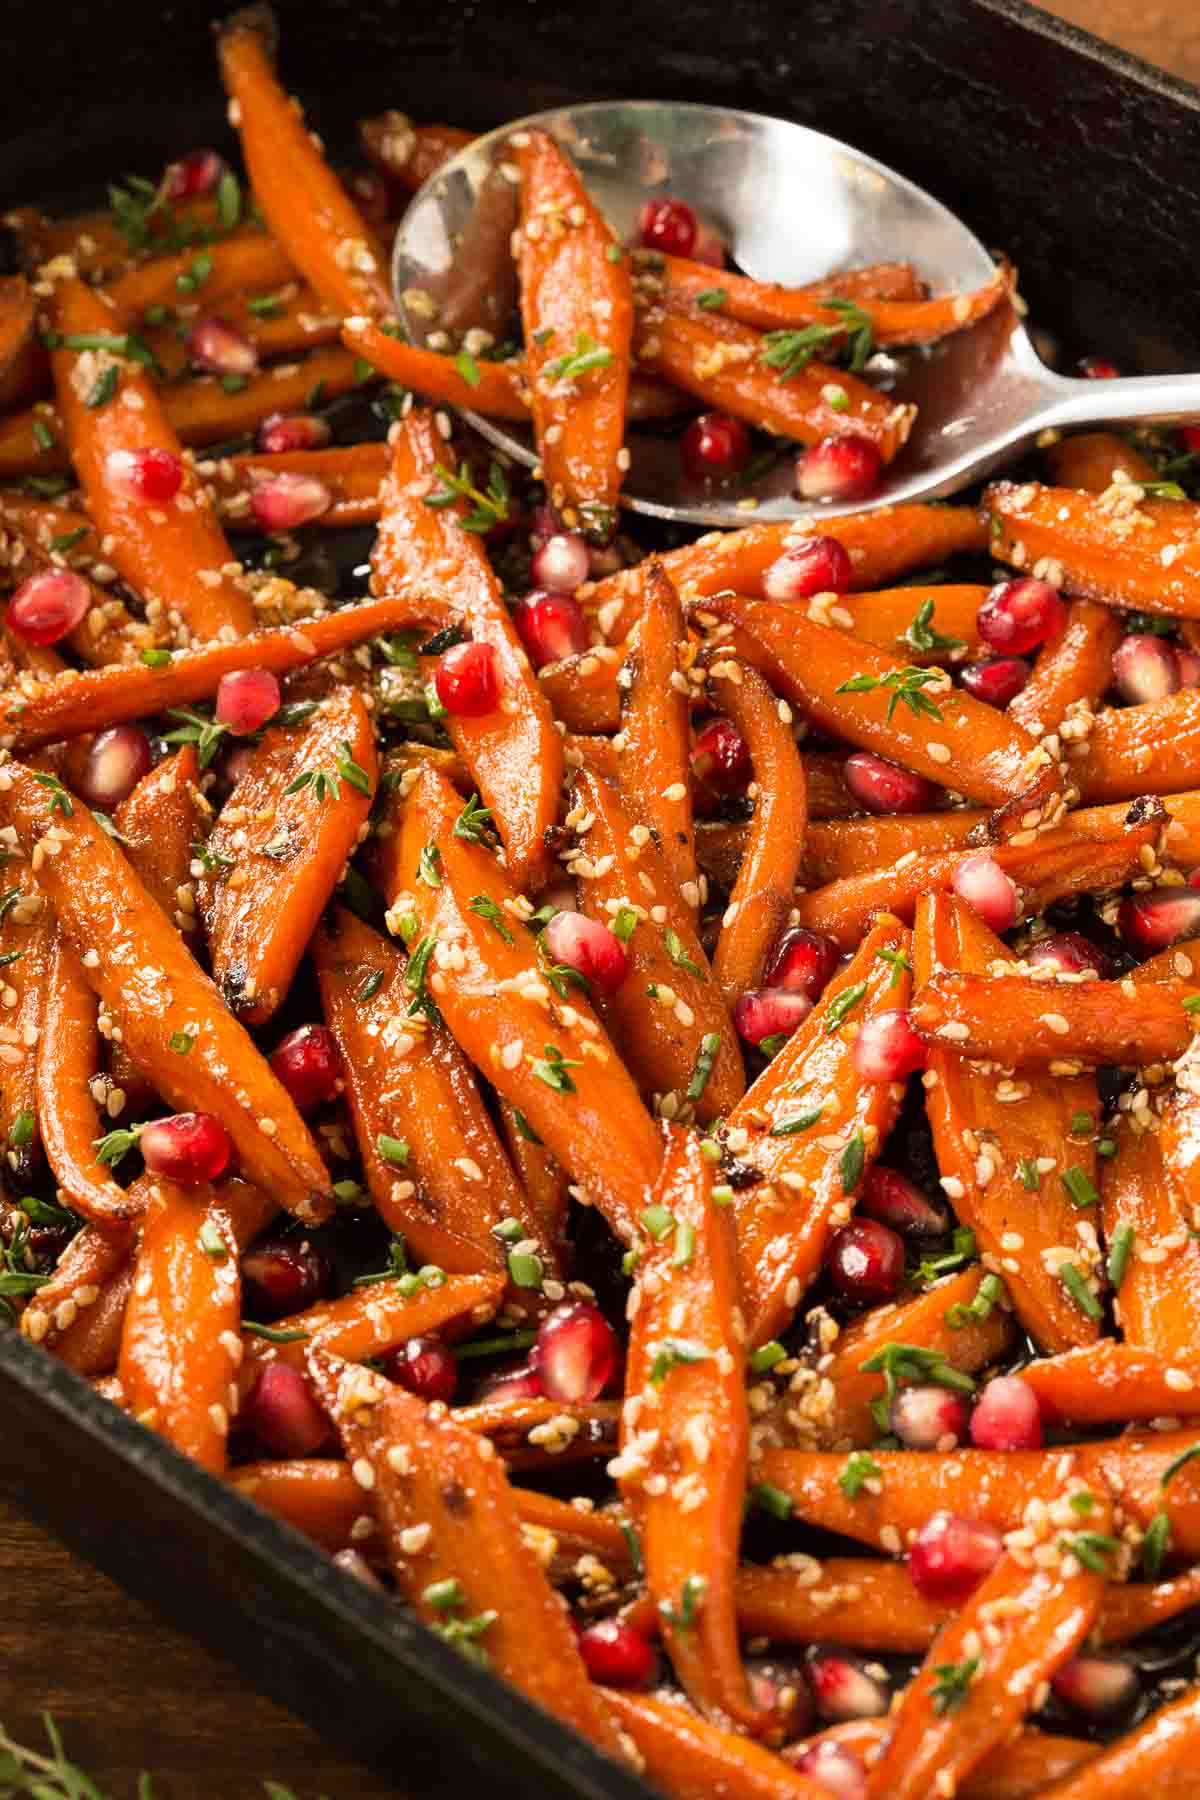 An image of an oval cast iron pan filled with our Honey Maple Roasted Carrots with a large serving spoon.